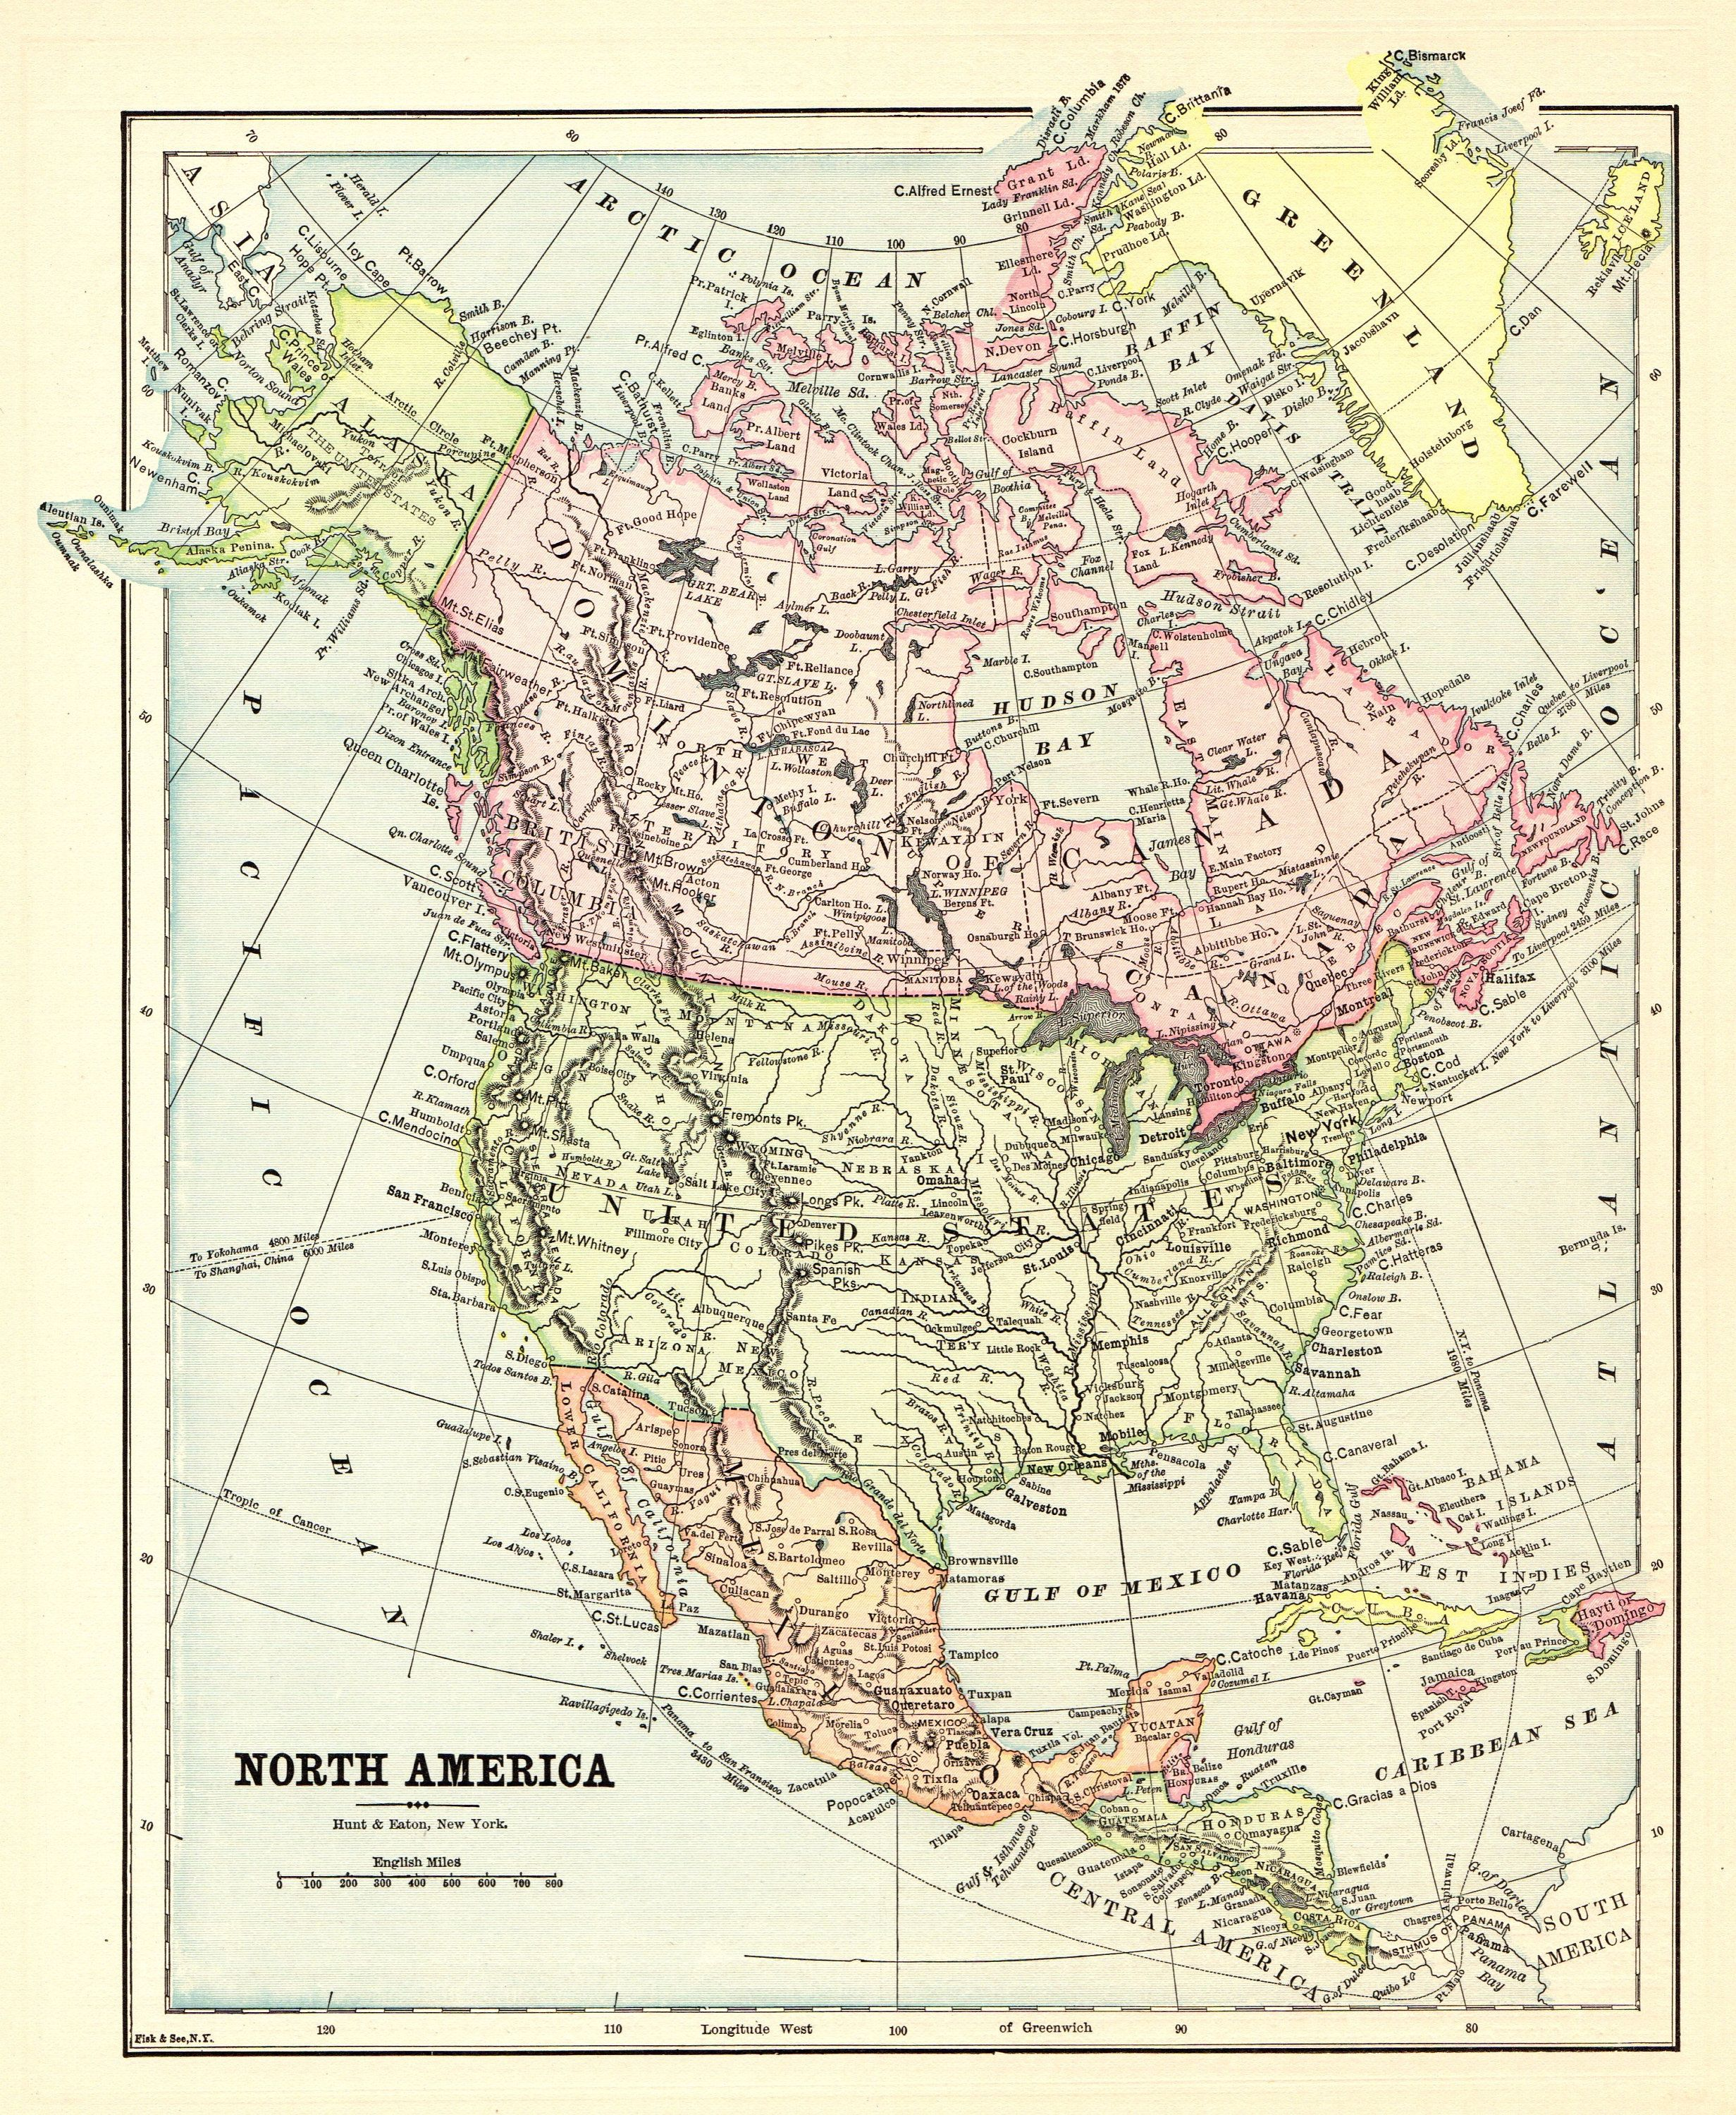 North America Map of North America Wall Art Decor LARGE Antique Wedding Gift Idea For Him Print Old